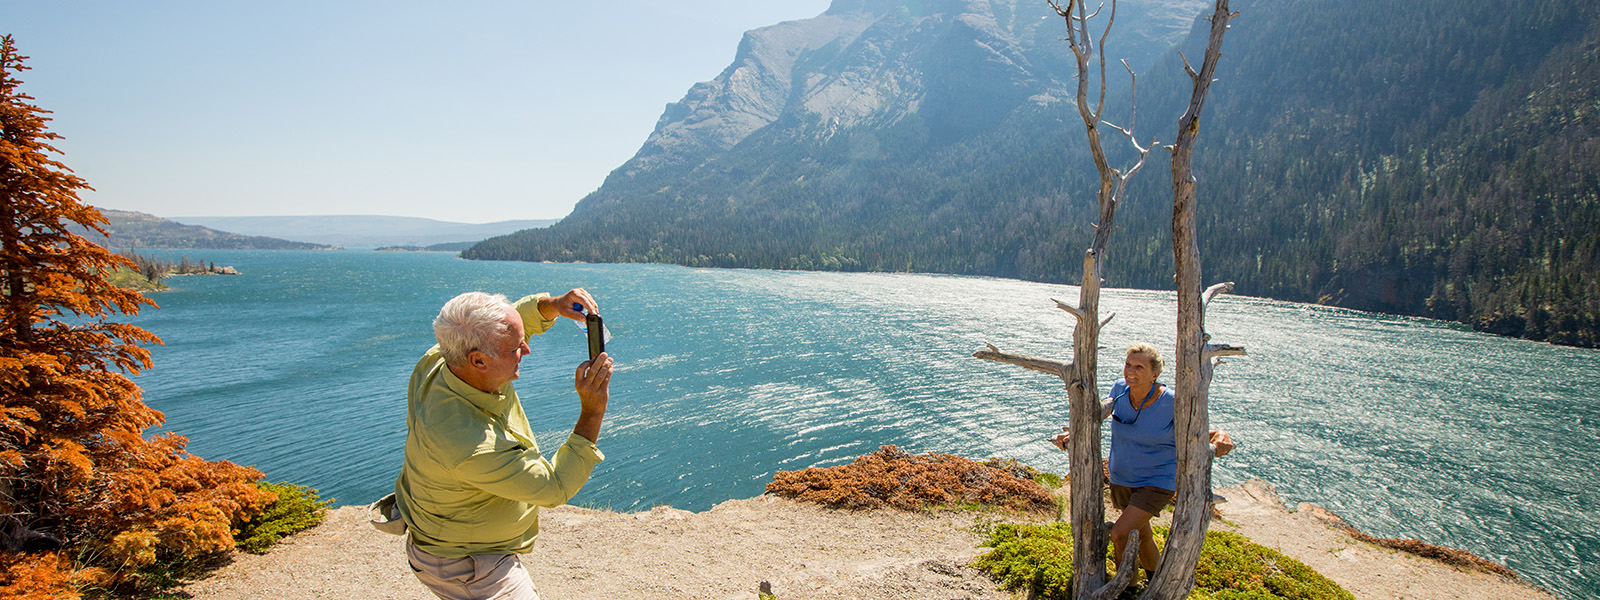 Glacier National Park Lodge-Based Hike and Explore